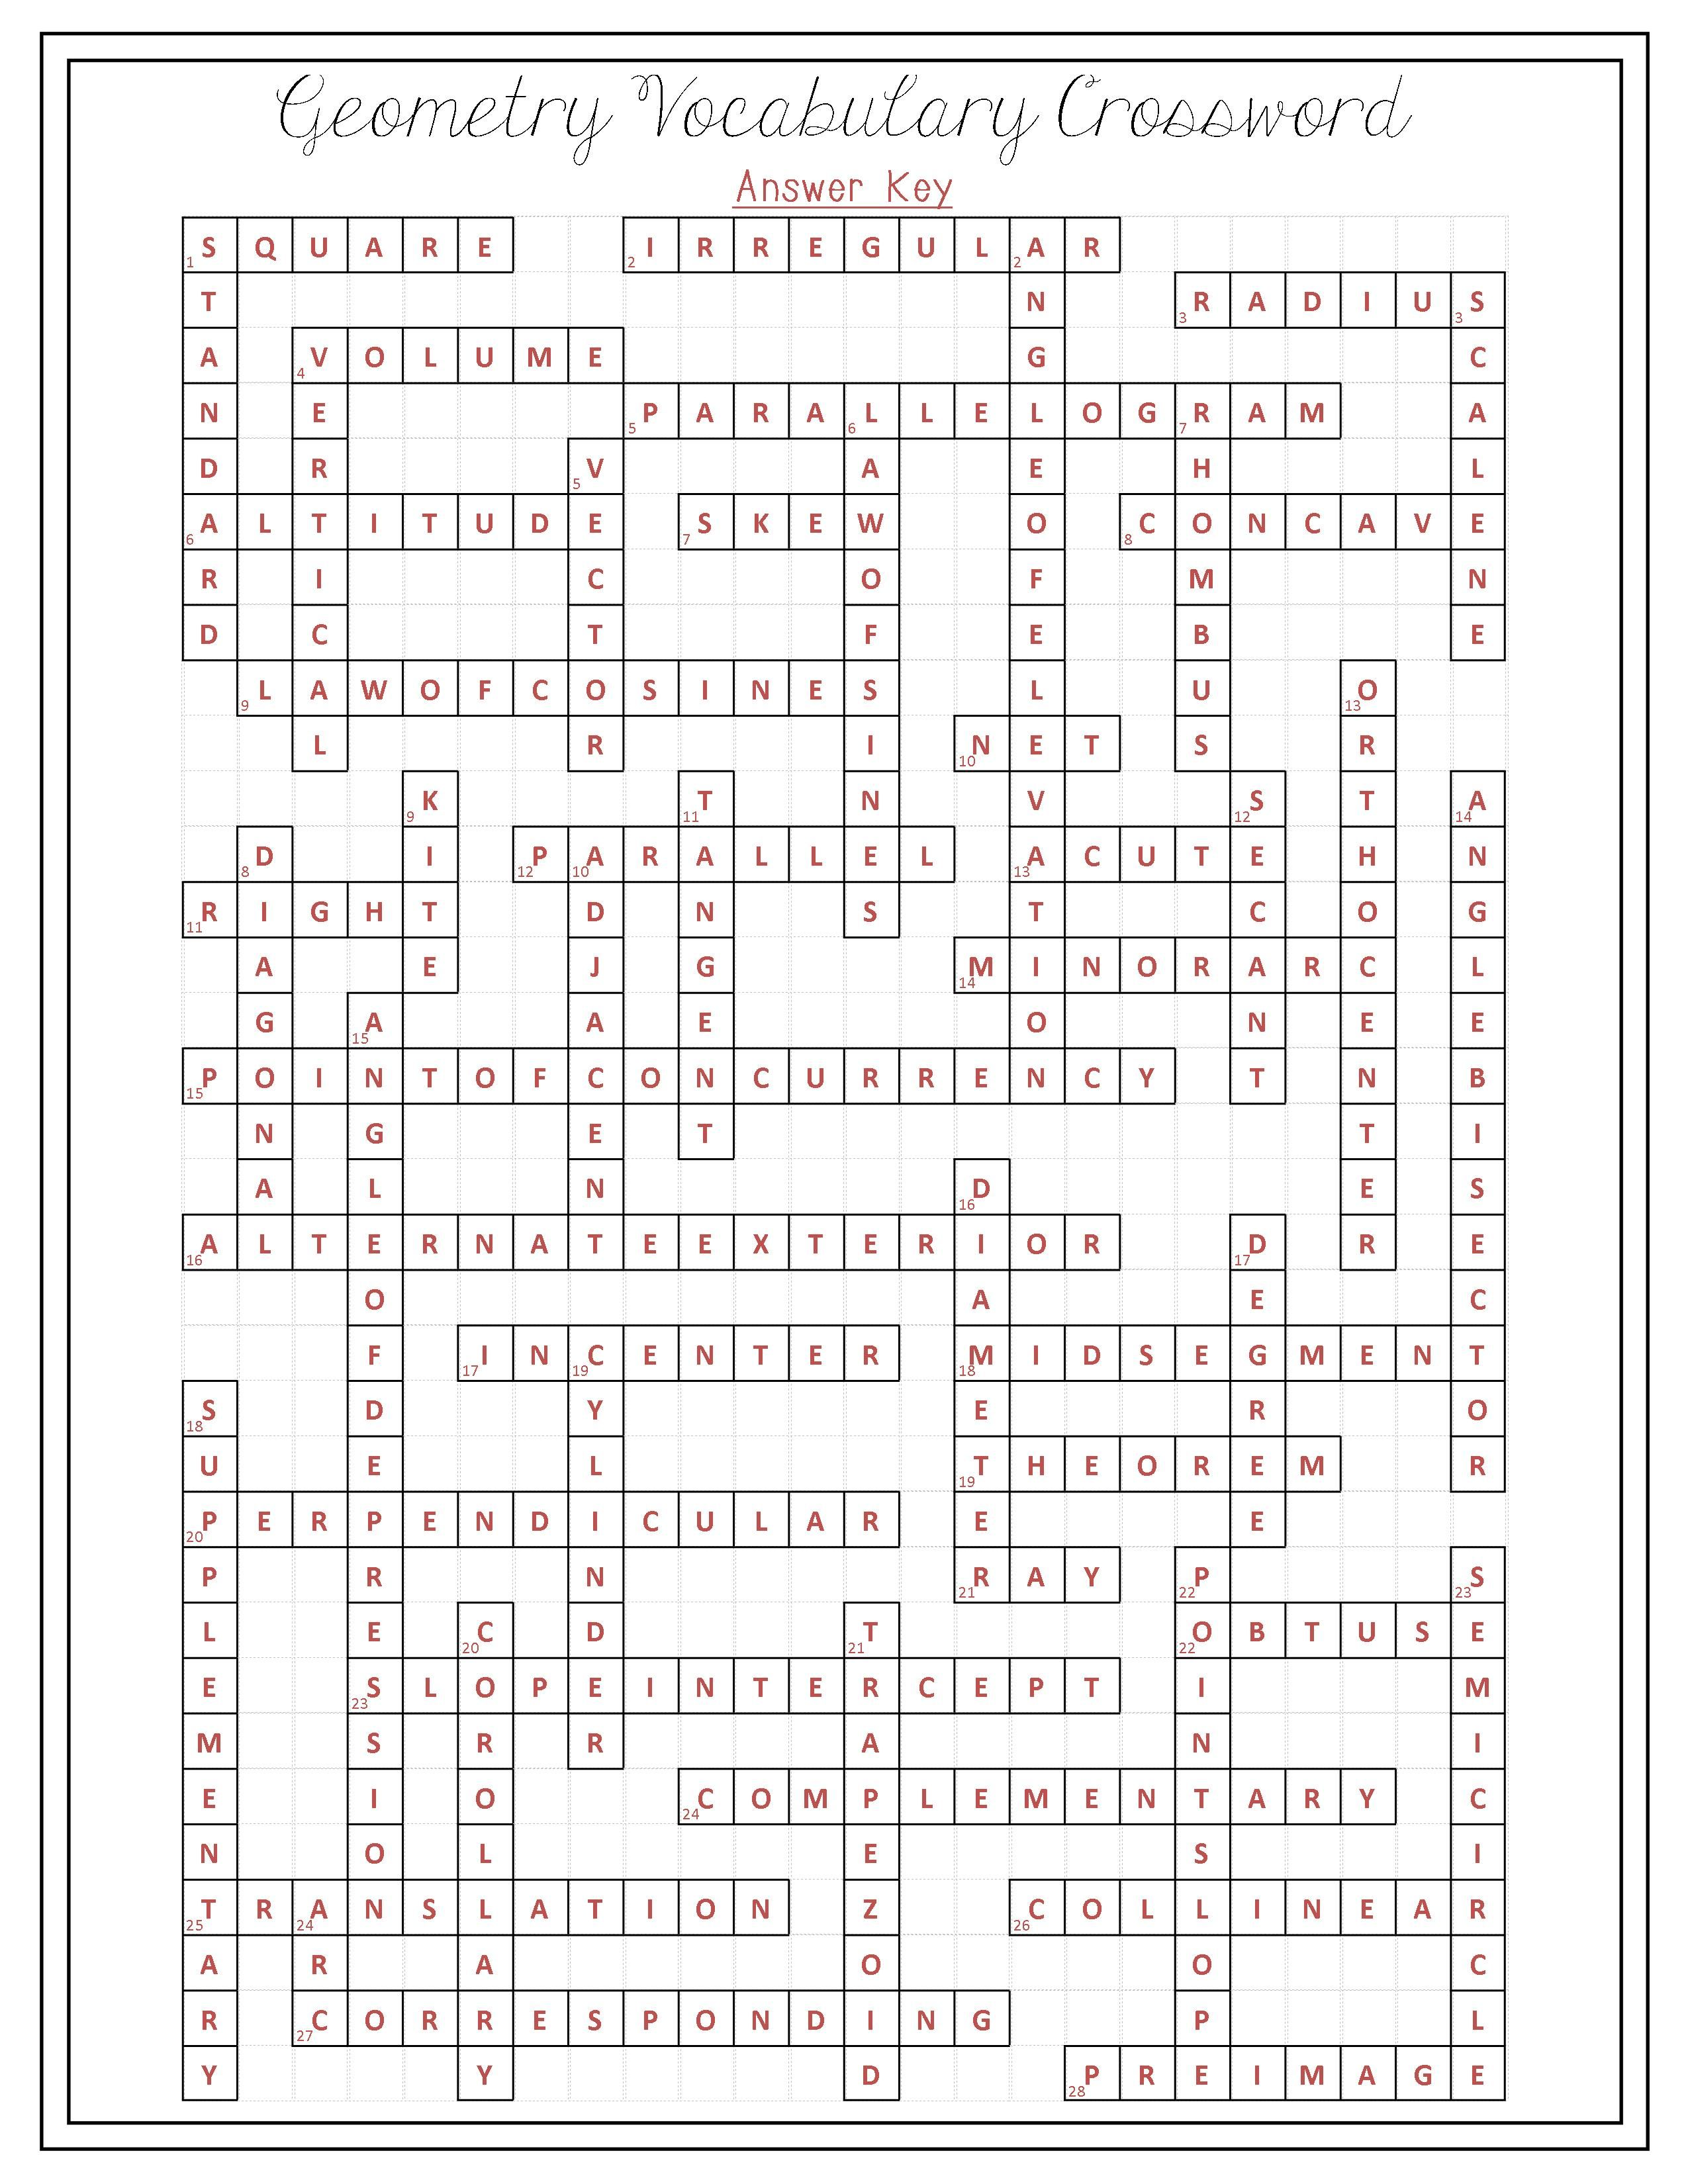 Crossword Puzzle Gallery Geometry Vocabulary Words Students And Math Of Maker